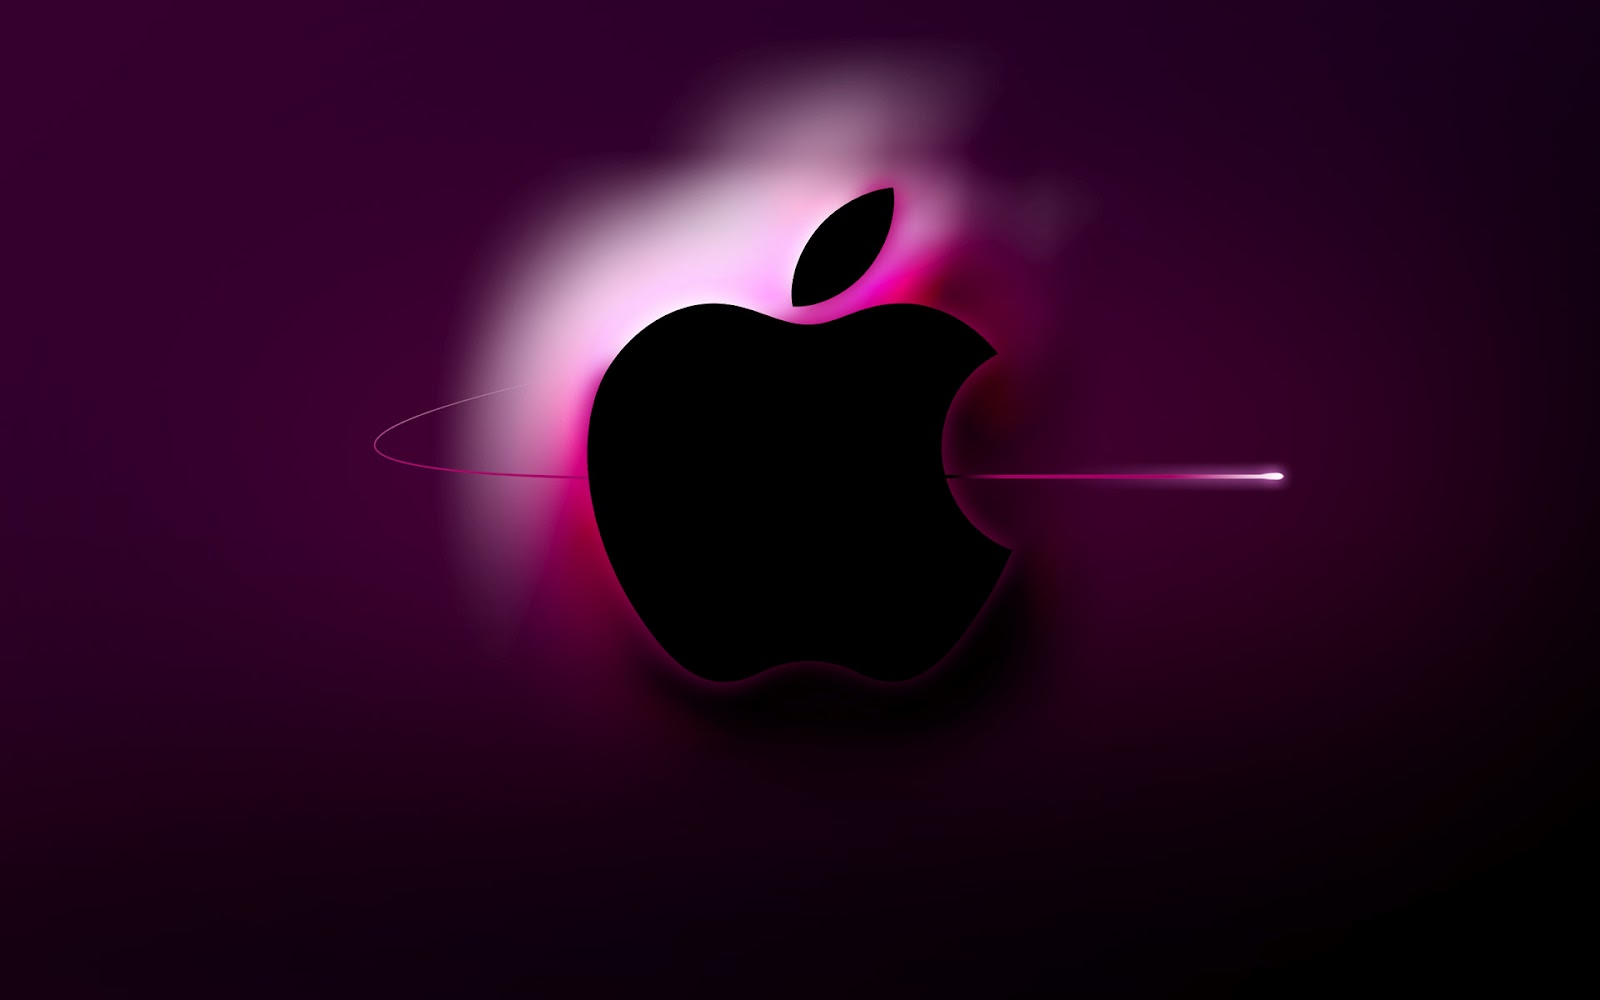 Iphone 5 Wallpaper Pink Apple Iphone Wallpapers Hd Wallpapers